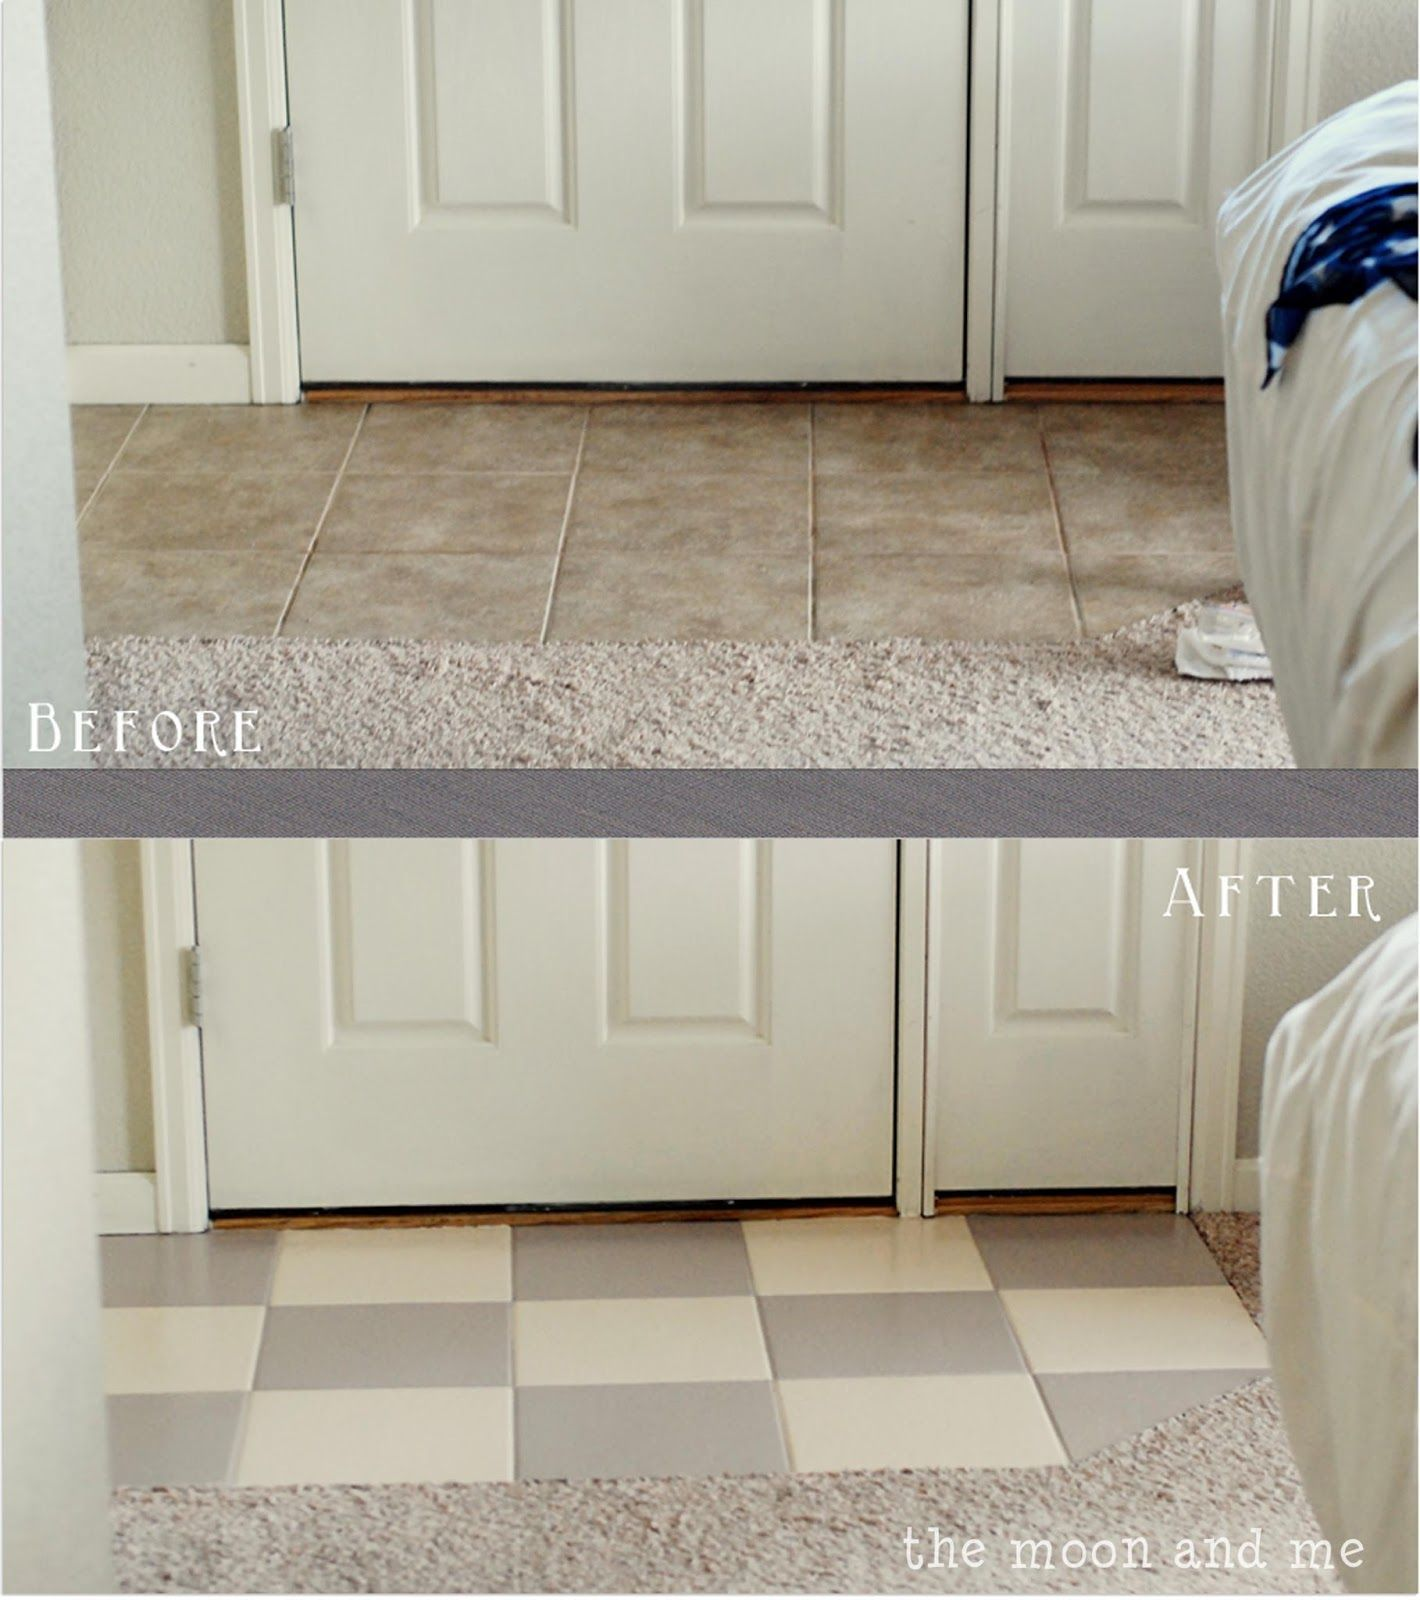 Floor painting a guide to the whats and hows of painting your you can actually paint any ugly tile floors youre not crazy about start with primer after thoroughly washing floors and finish with a couple coats of dailygadgetfo Gallery